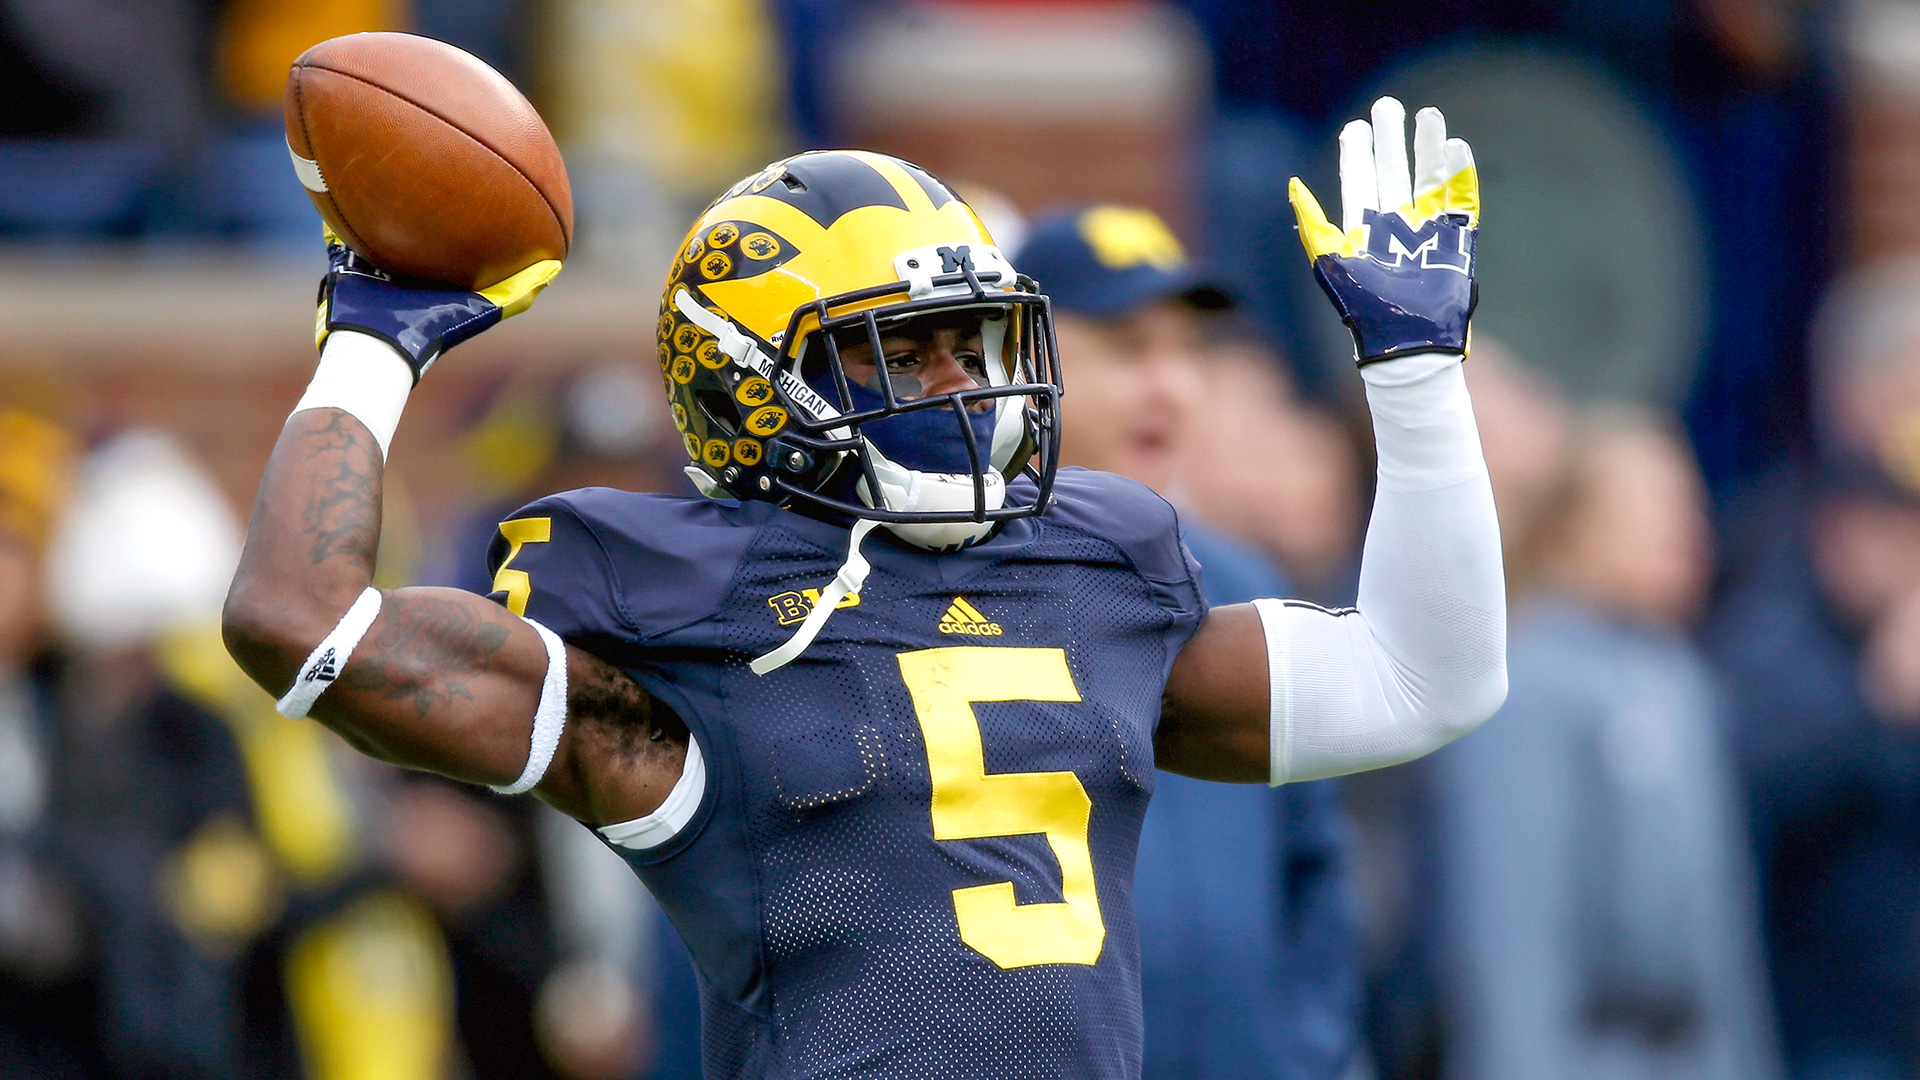 jabrill-peppers-012816-getty-ftrjpg_12dh